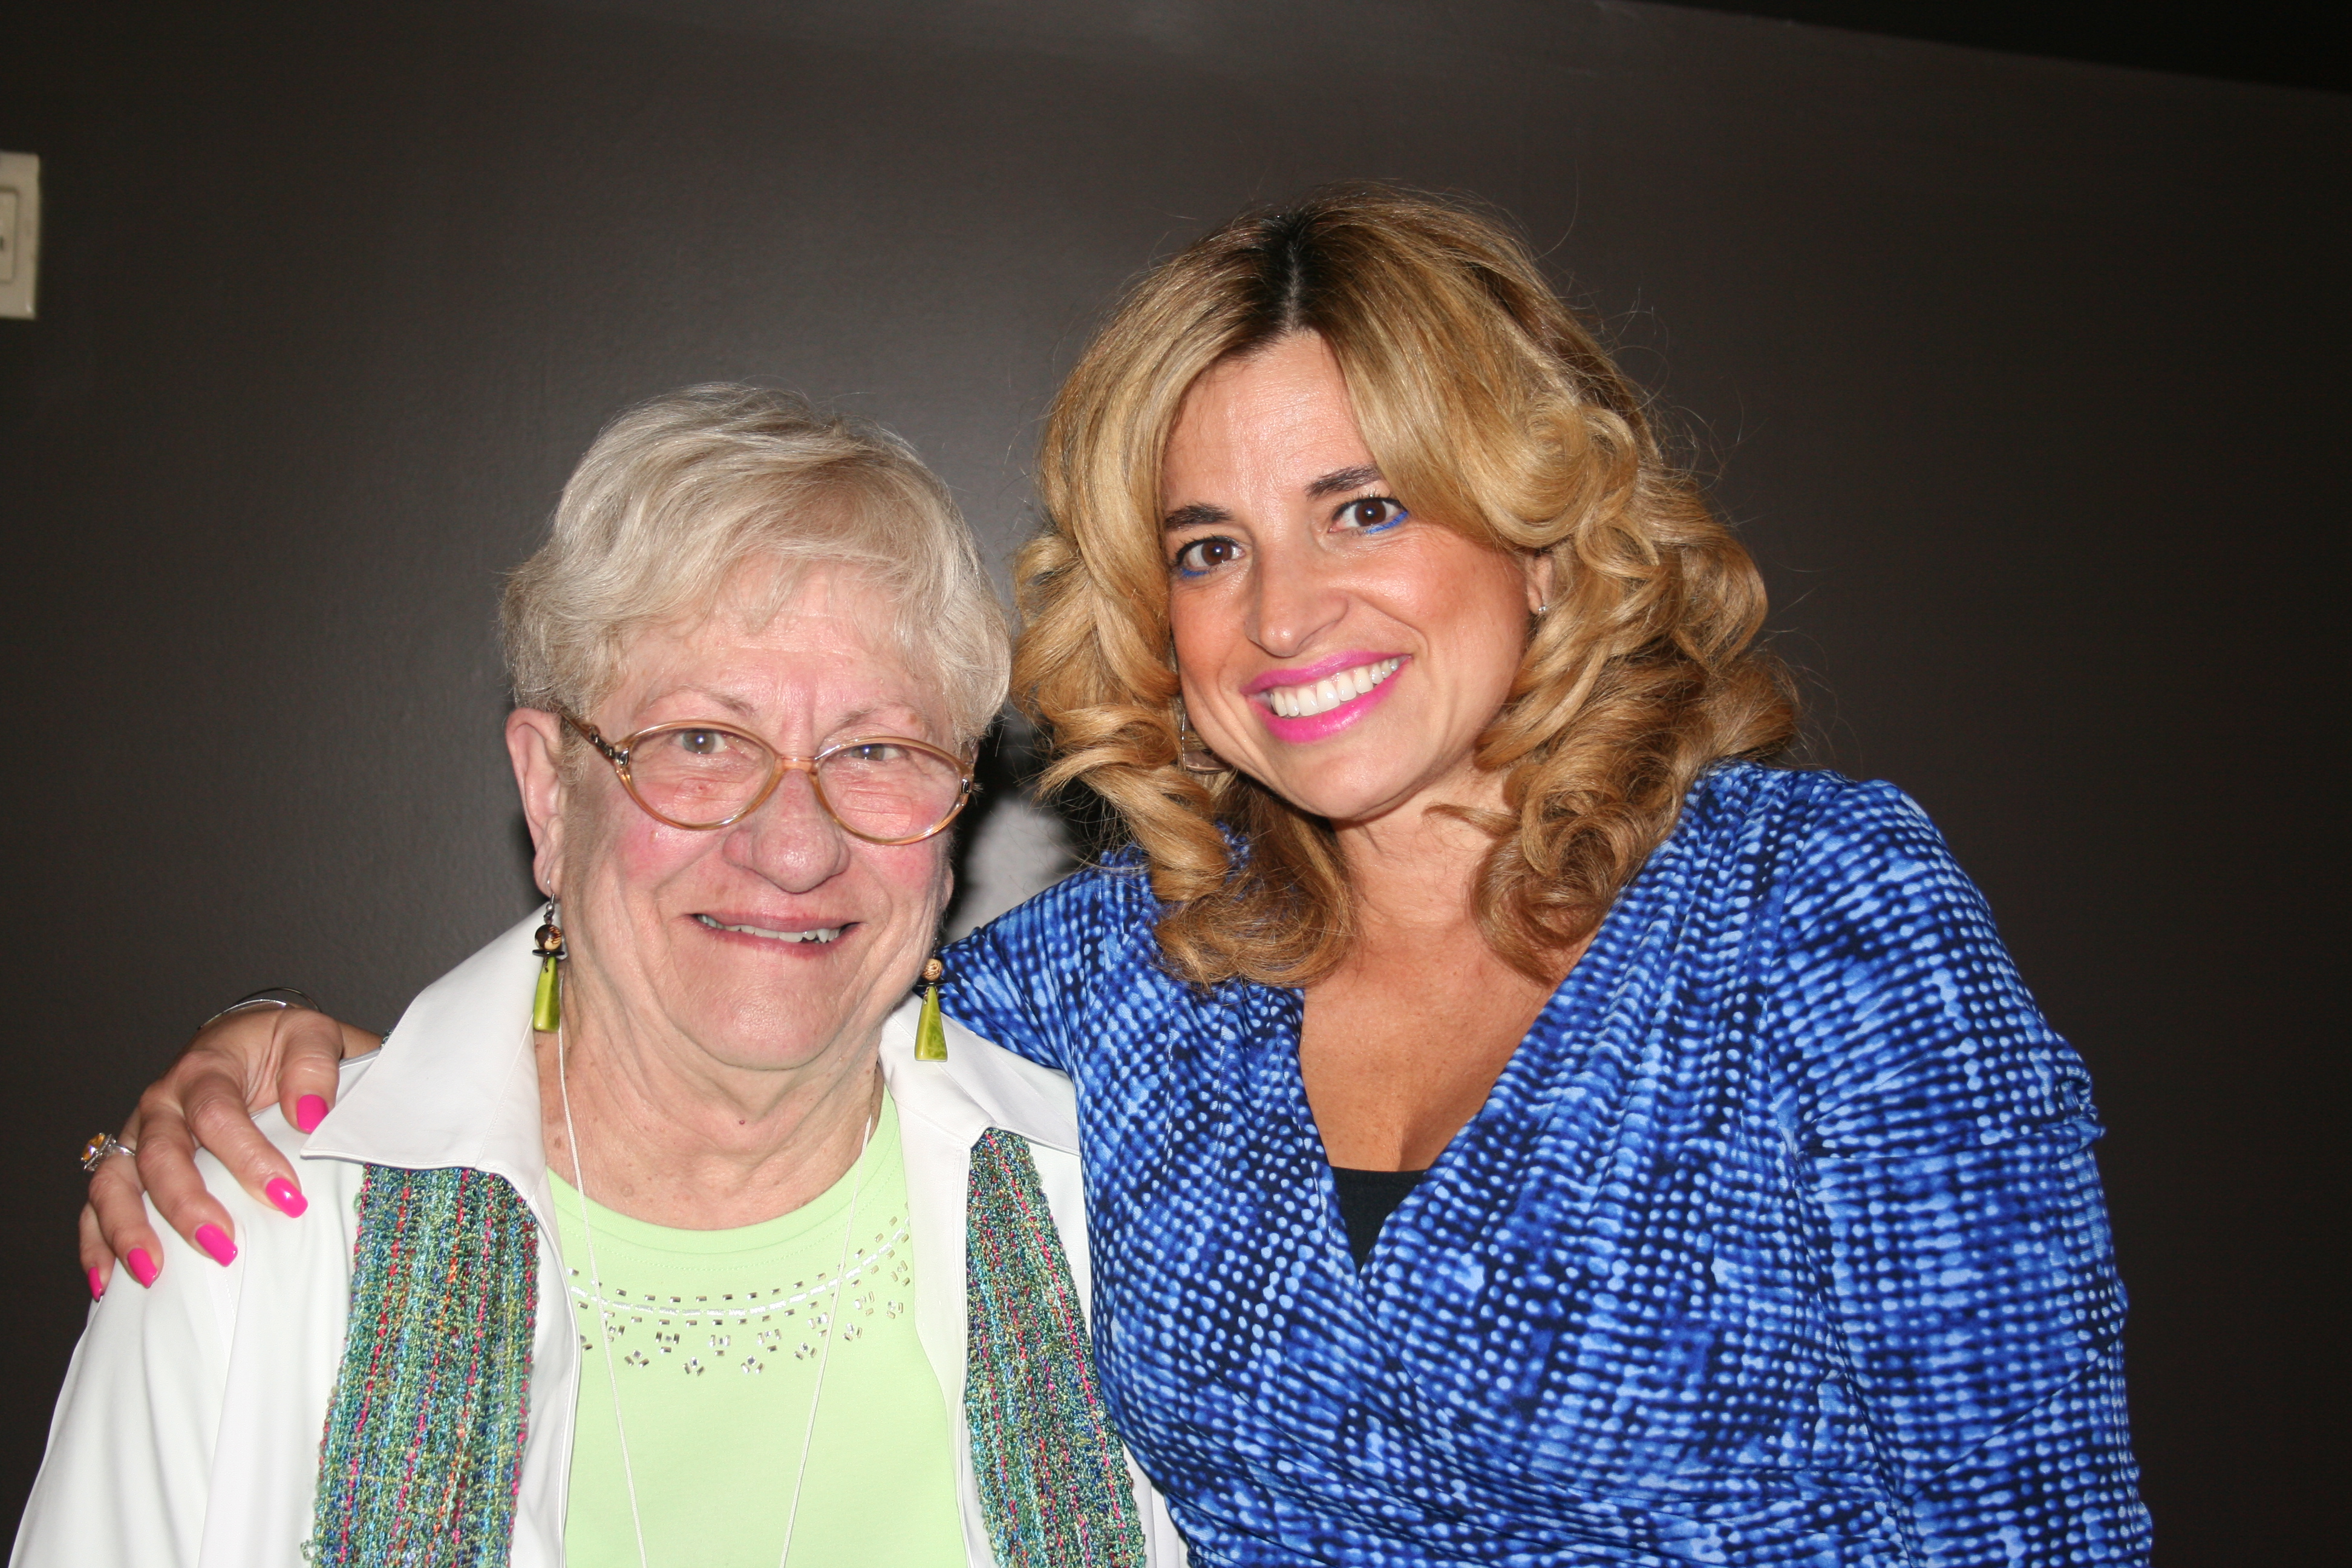 Marg, a long-time volunteer at the Stedman Hospice, with Olga.